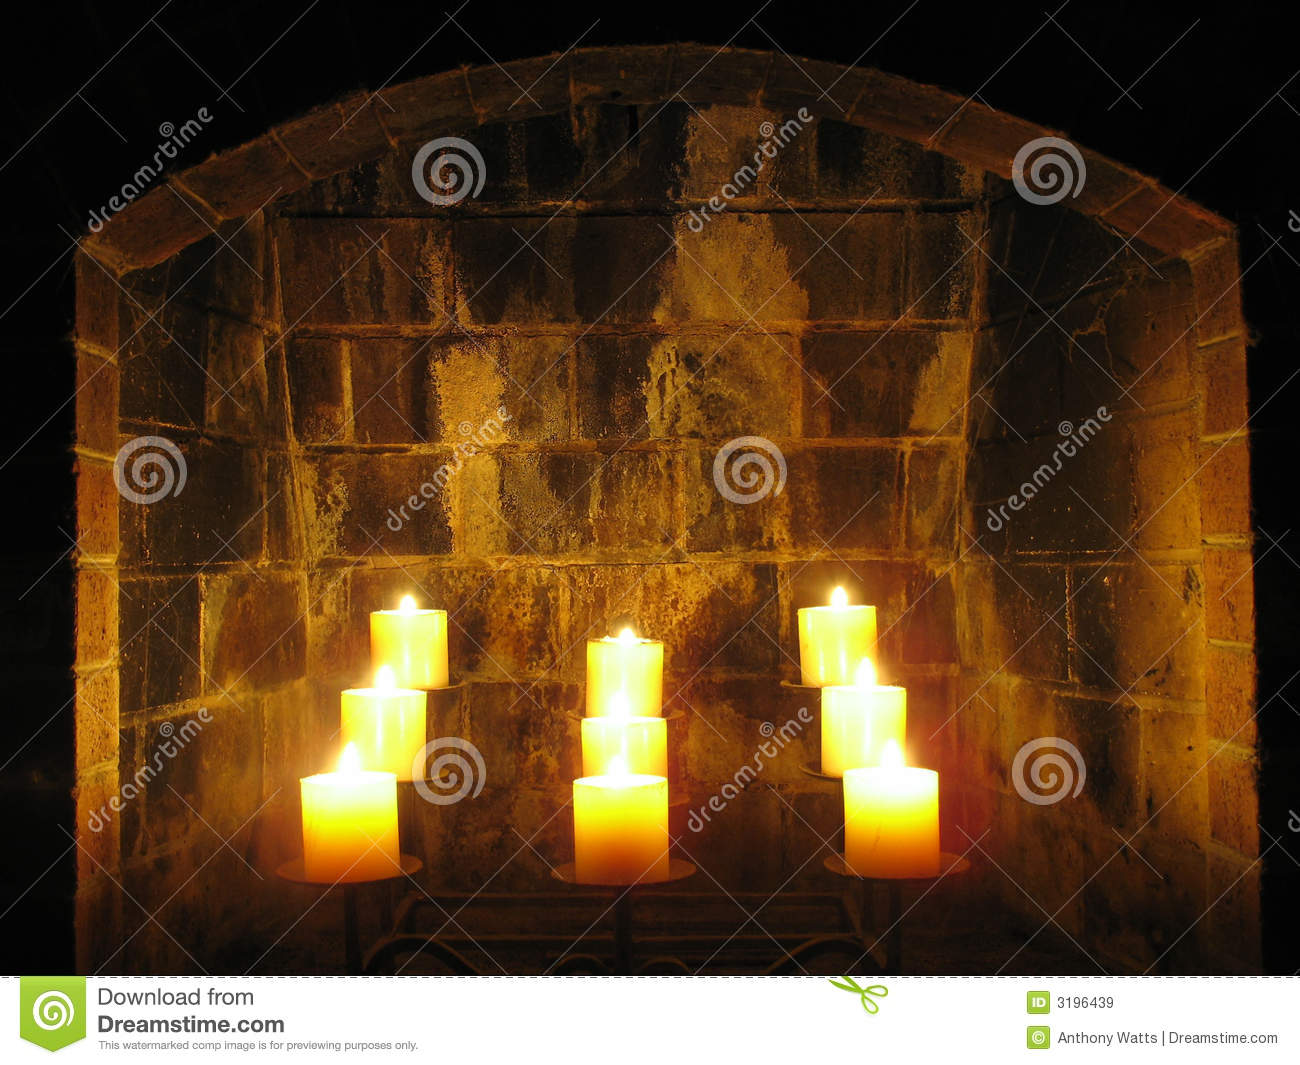 fireplace candles royalty free stock images image 3196439